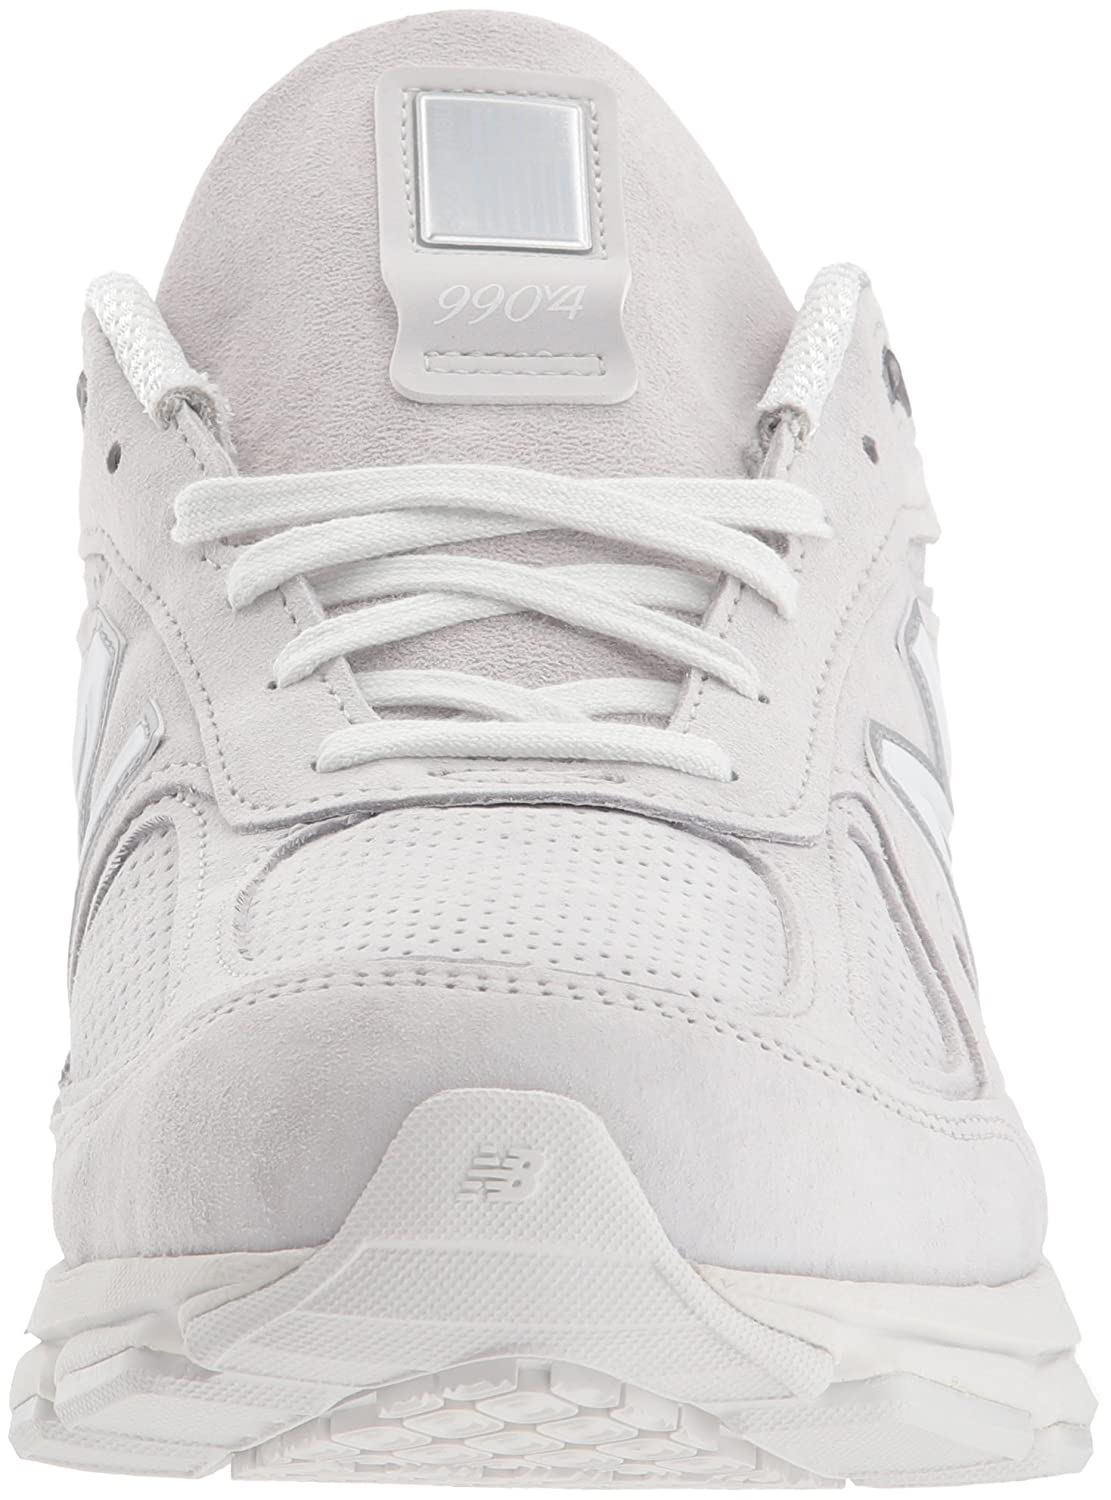 New-Balance-990-990v4-Classicc-Retro-Fashion-Sneaker-Made-in-USA thumbnail 10